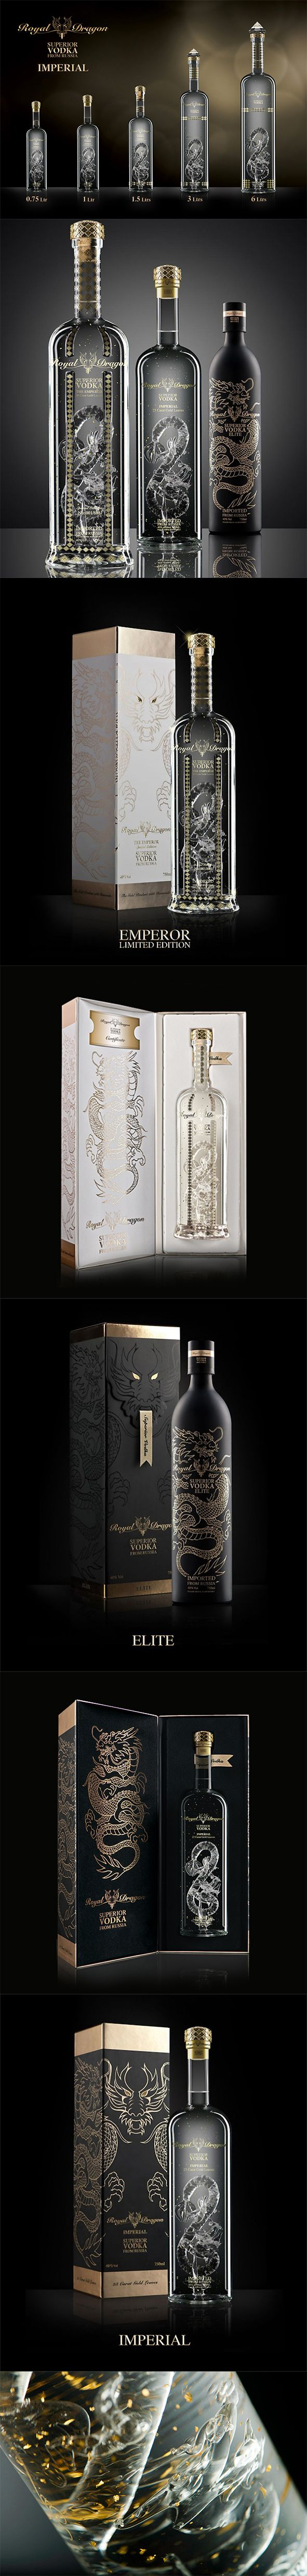 Here you go an extended pin for Royal Dragon Vodka Superior Vodka from Russia PD